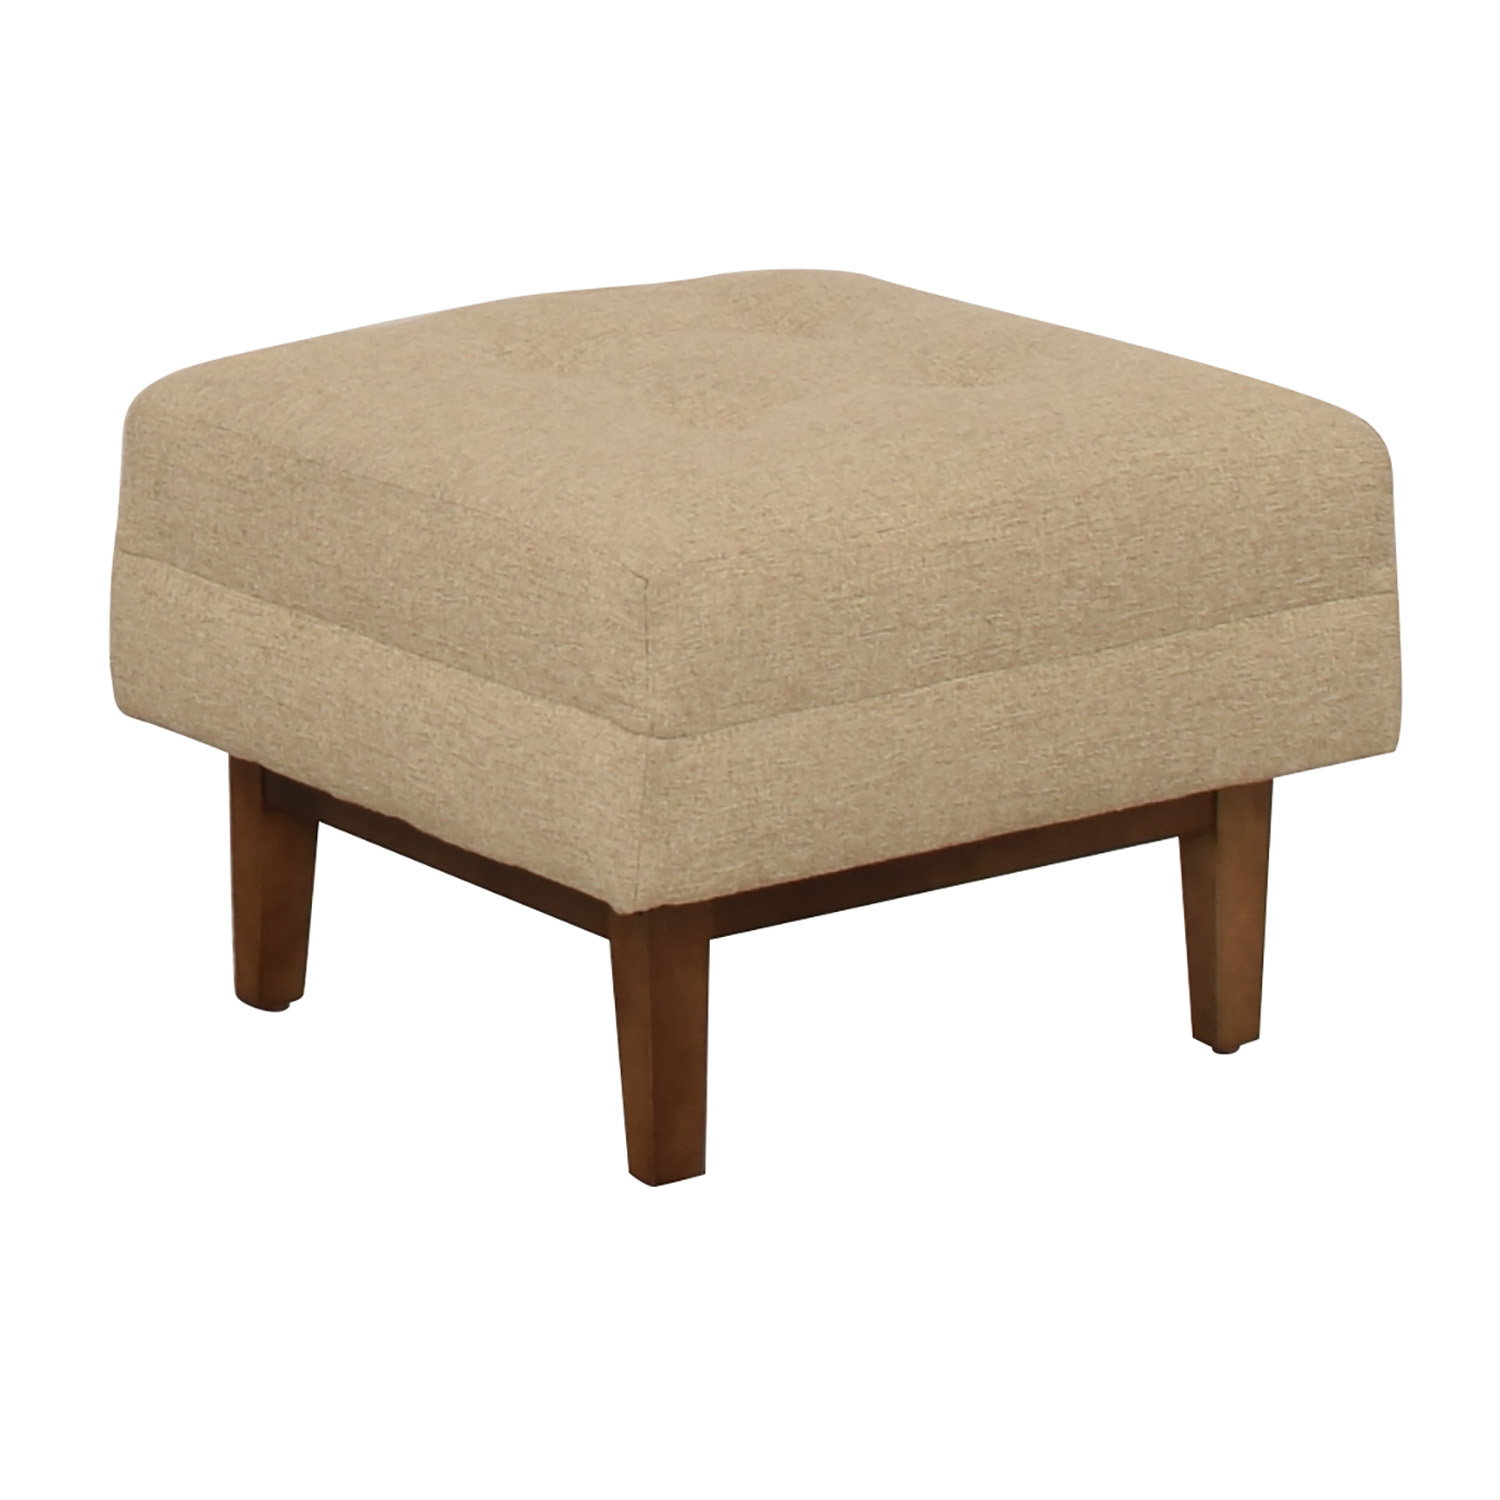 Rowe Furniture Ethan Beige Tufted Ottoman Chairs